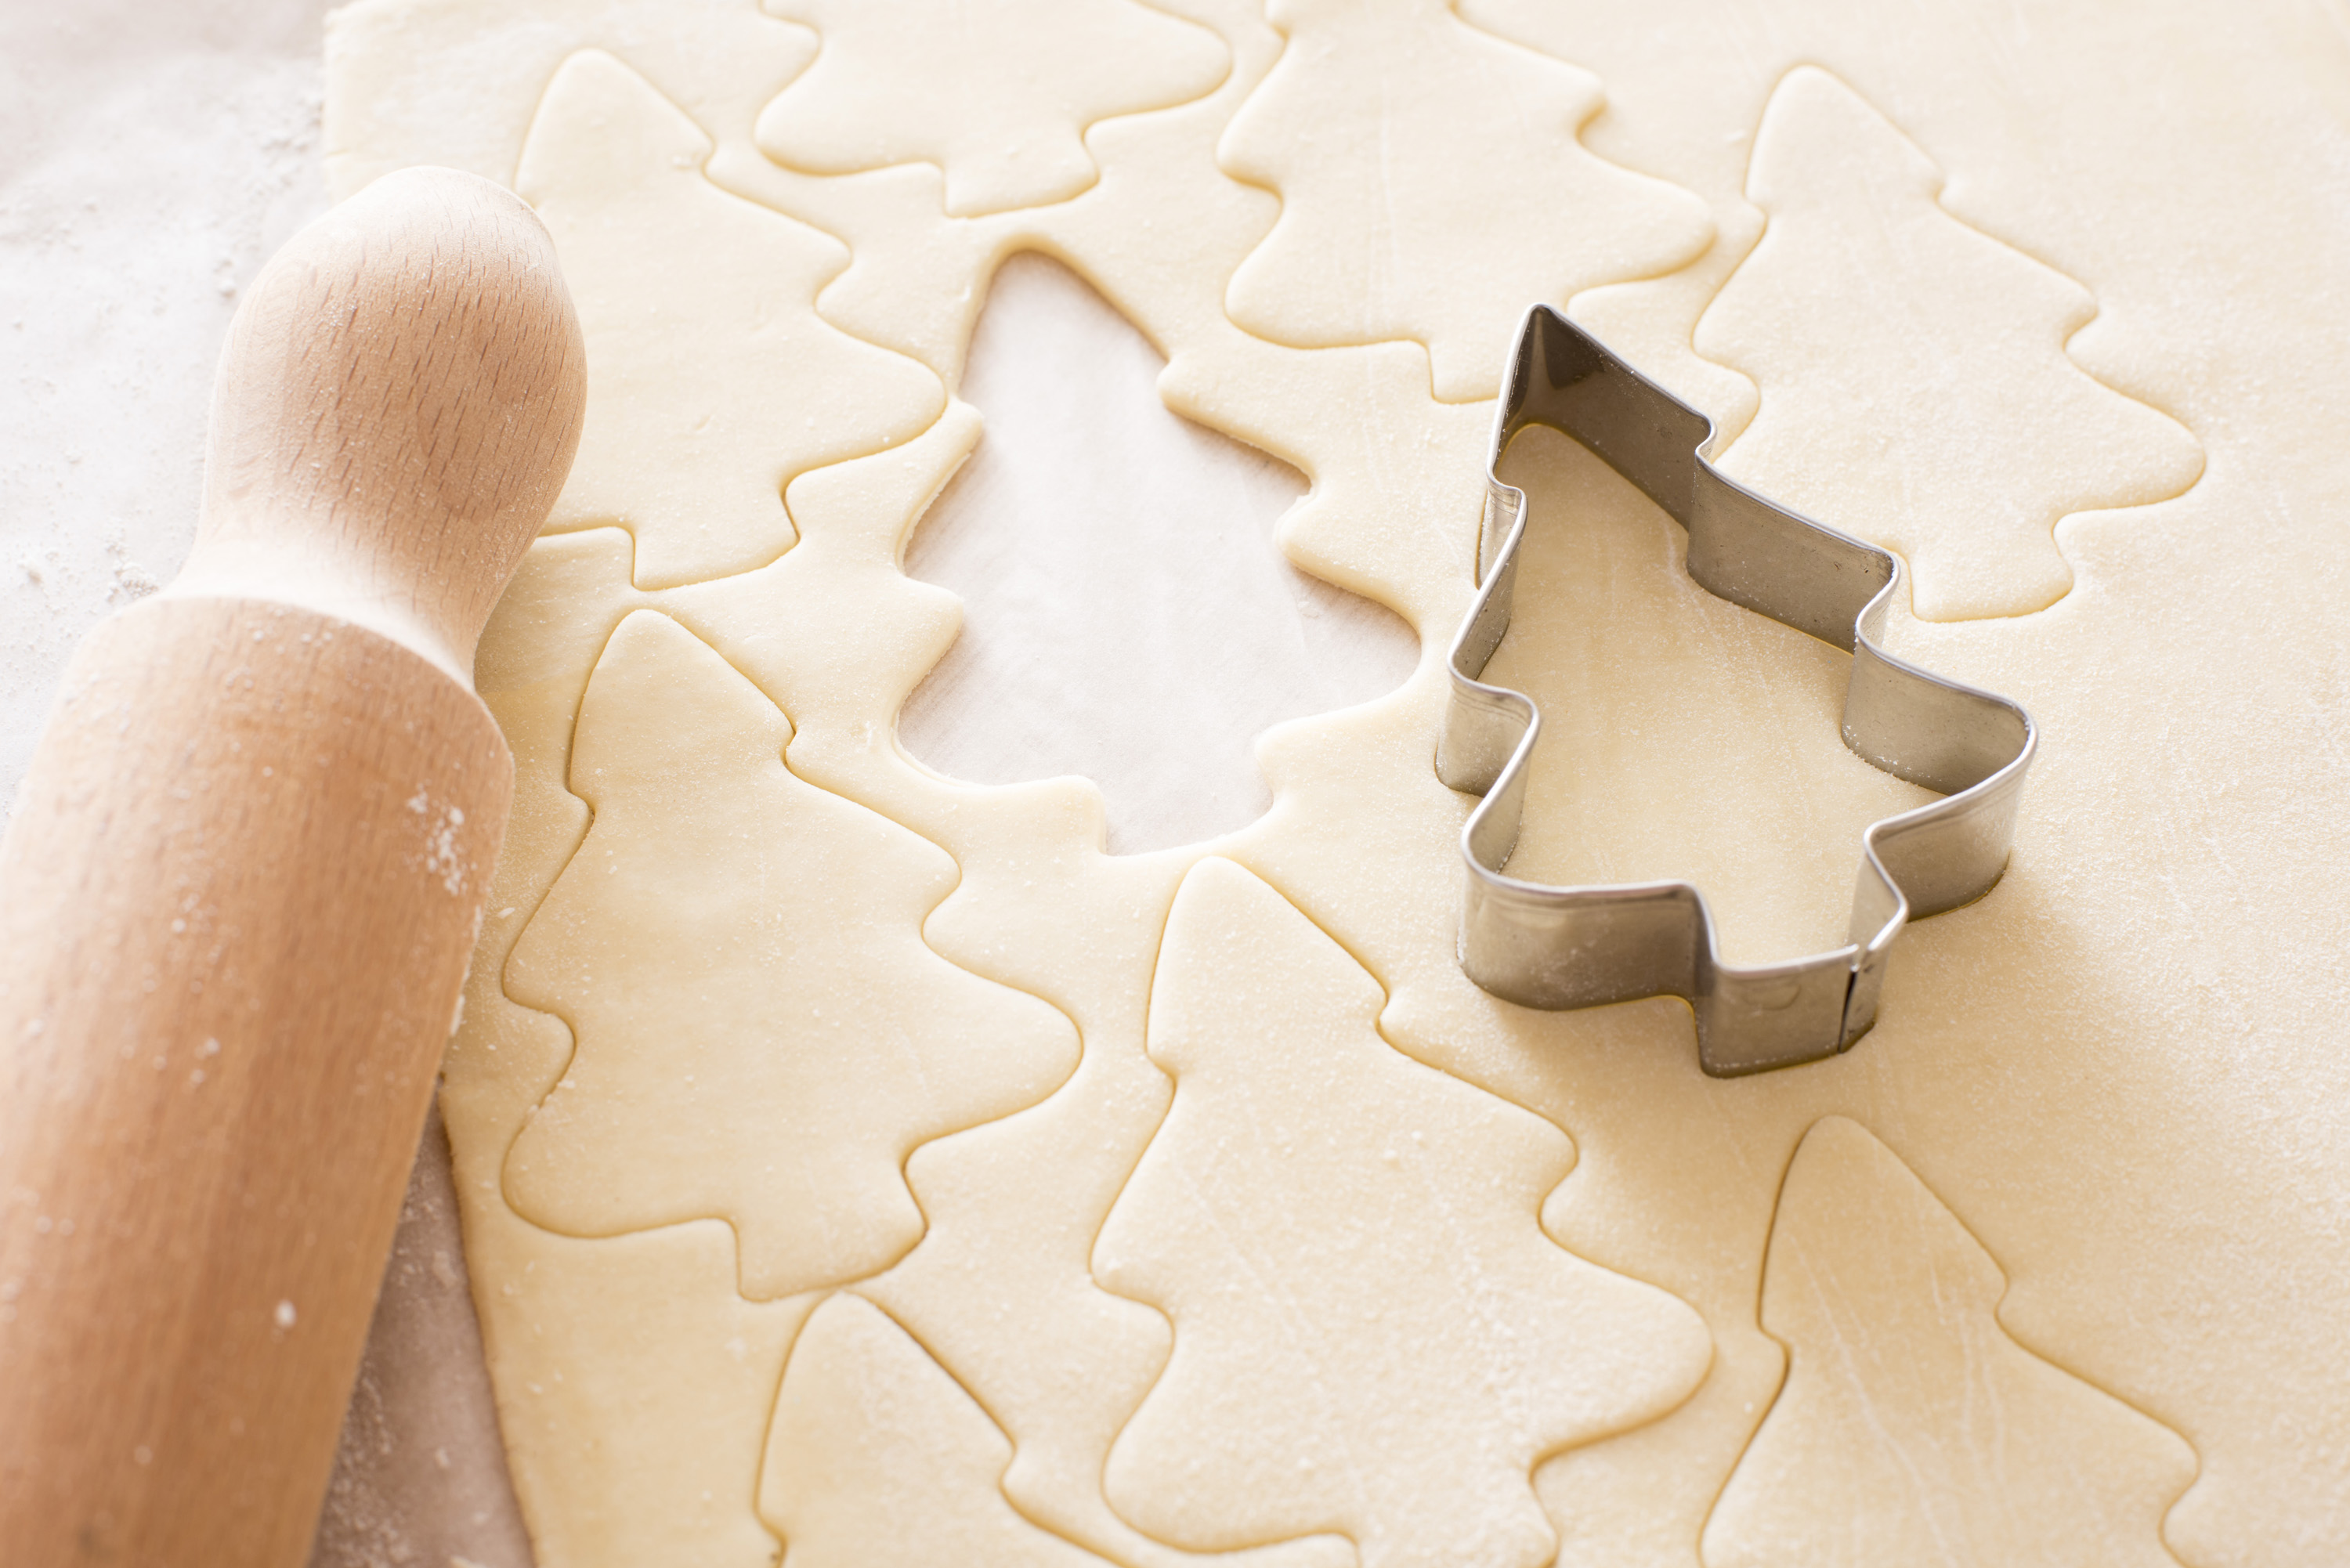 Baking tree shaped Christmas cookies at home with a metal cookie cutter, rolling pin and cut out shape on neatly rolled and trimmed dough